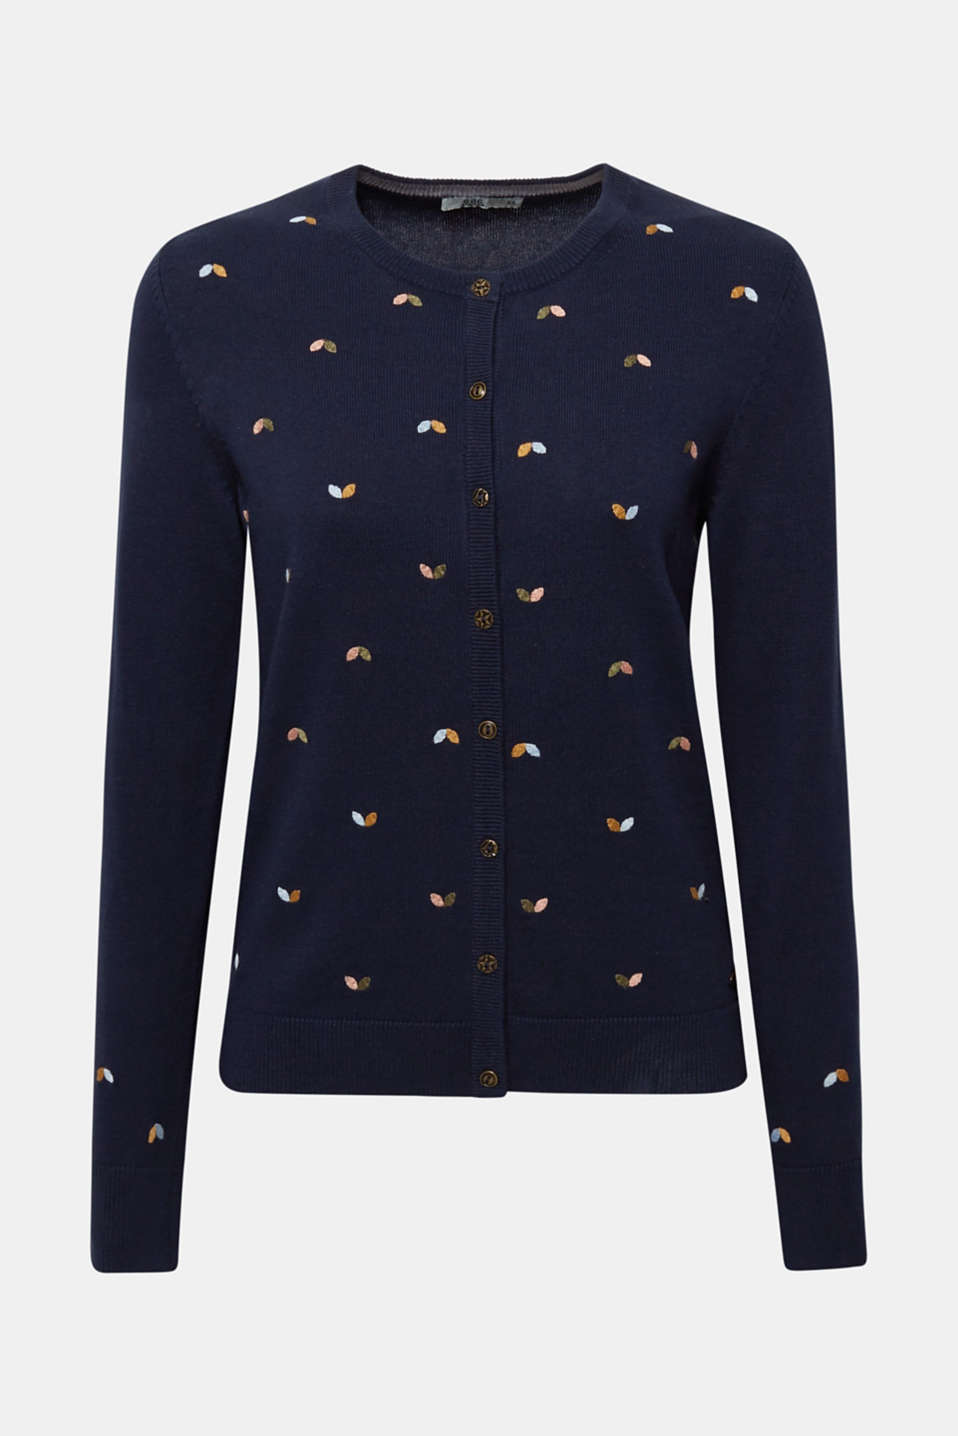 Cardigan with embroidery, 100% cotton, NAVY 2, detail image number 8